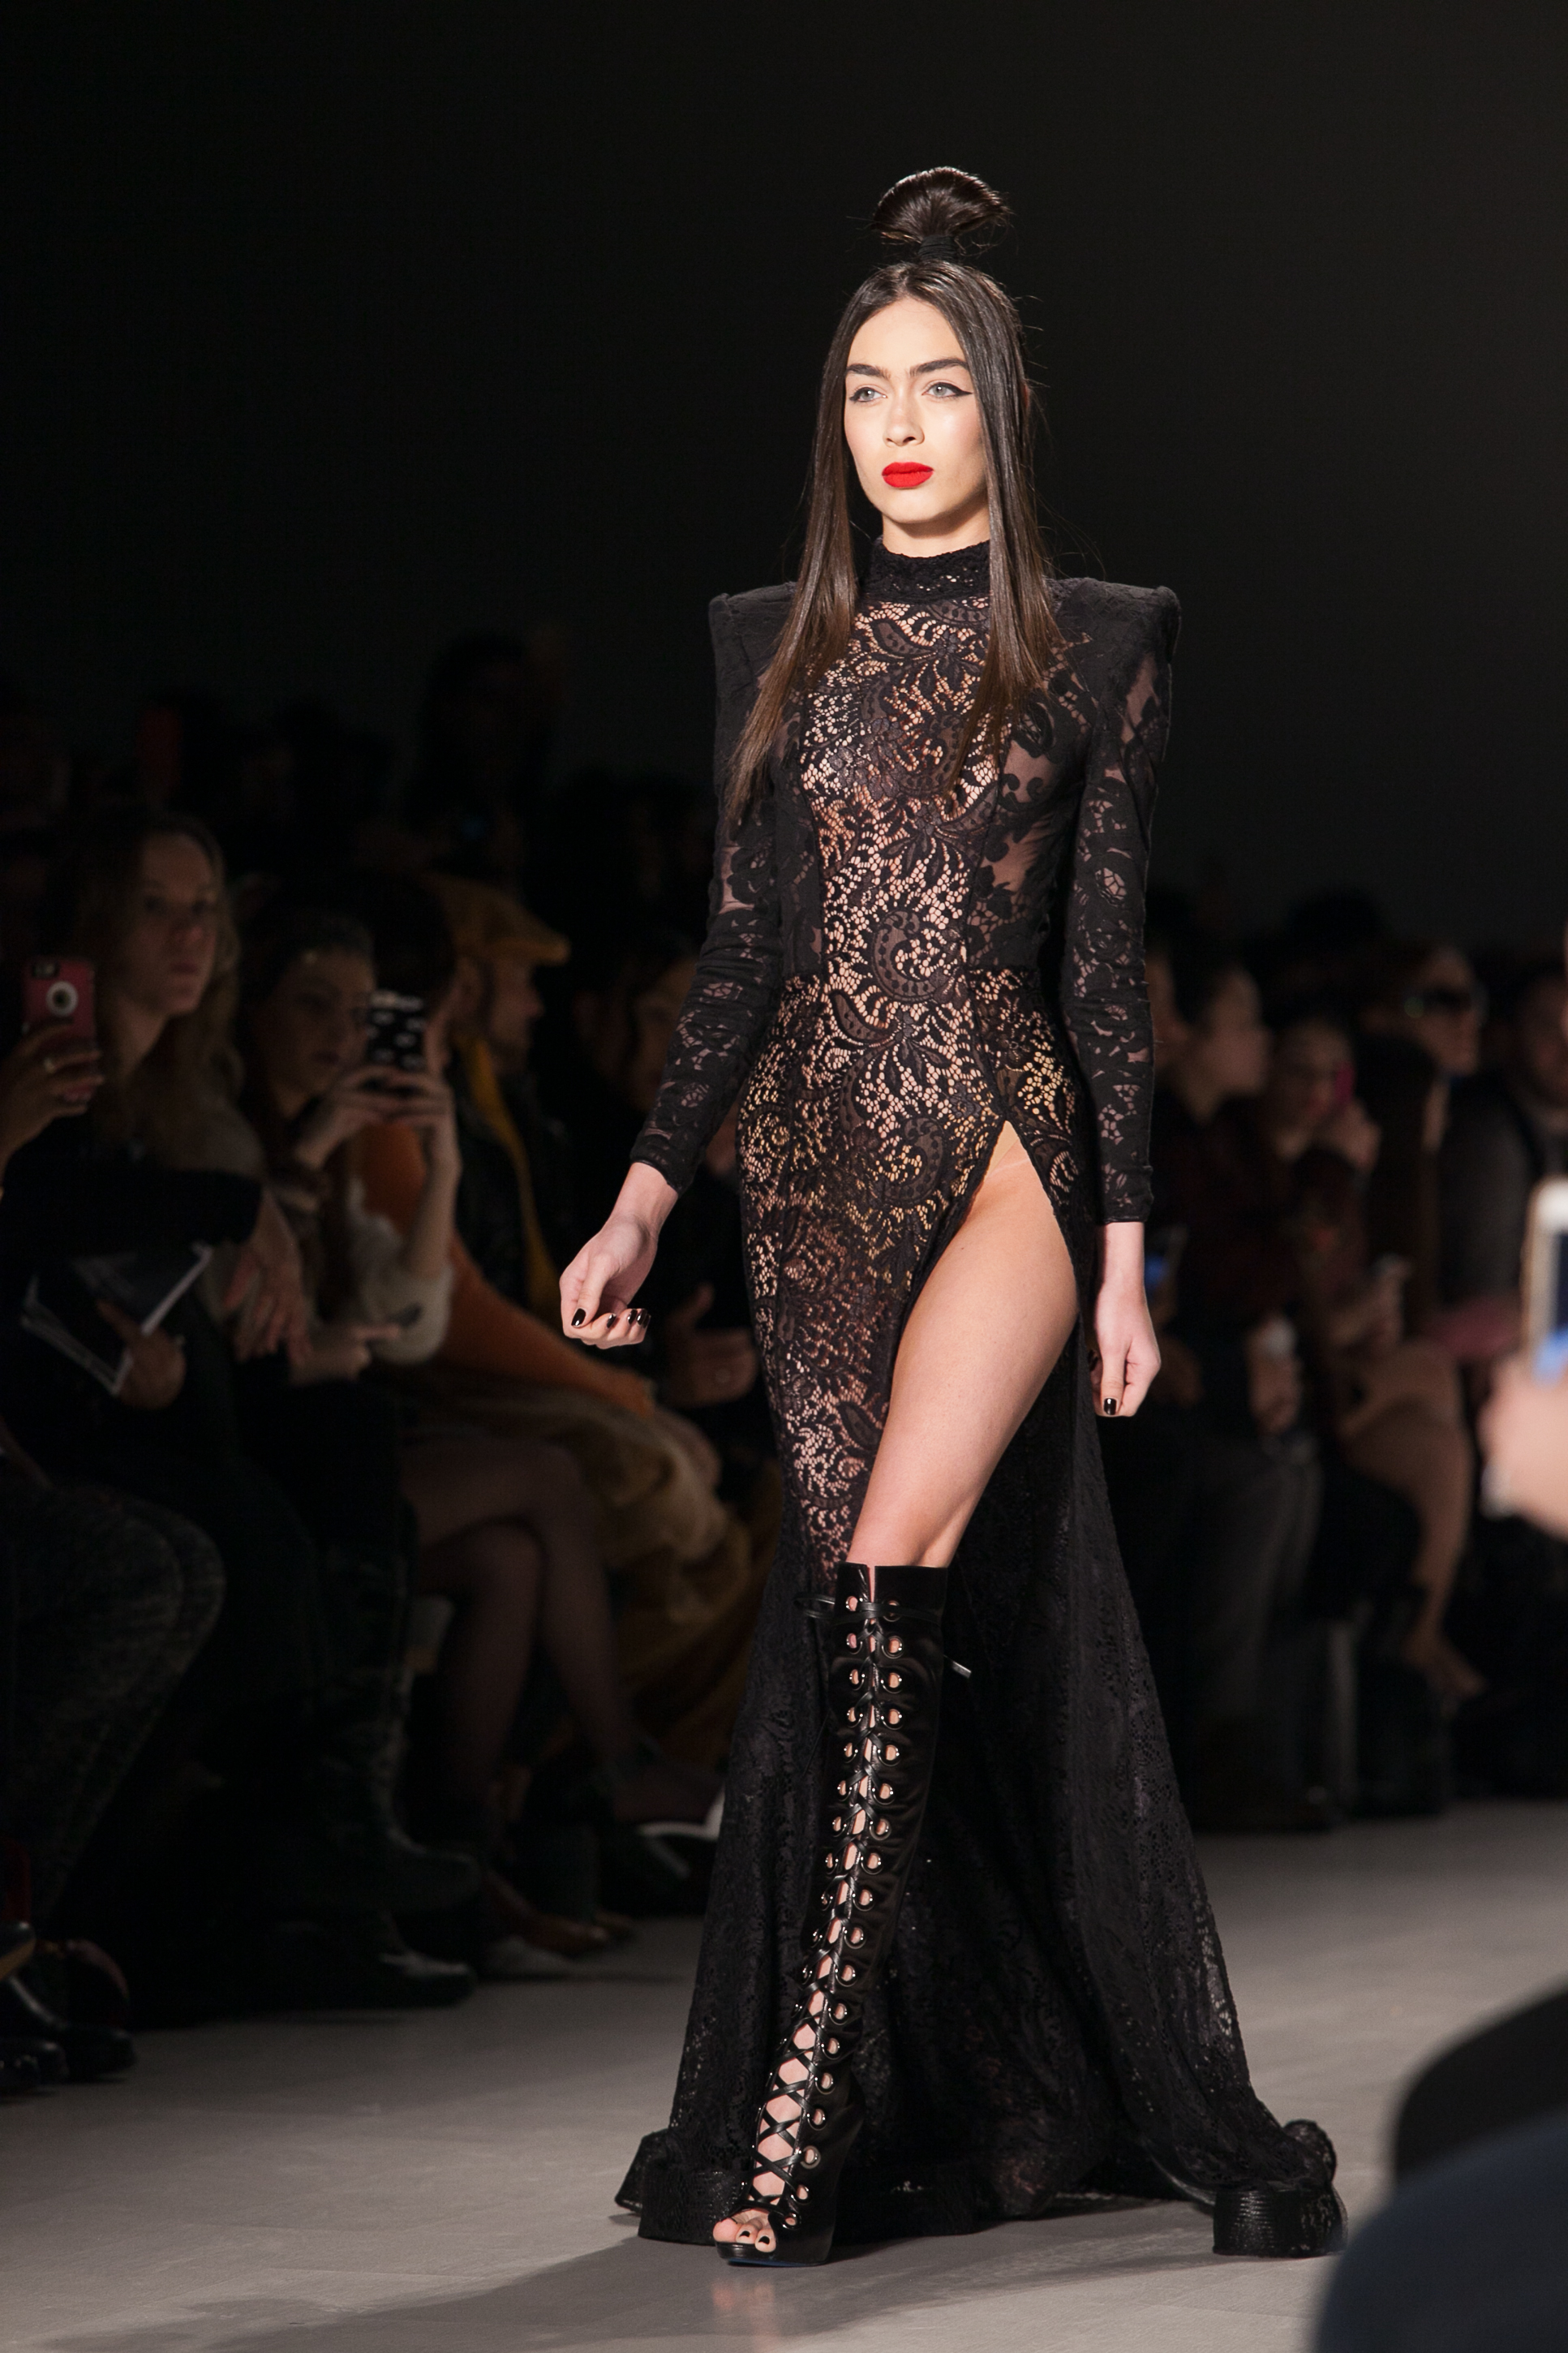 027-Michael-Costello-New-York-Fashion-Week-Fall-Winter-2015-Shana-Schnur-Photography-027.jpg